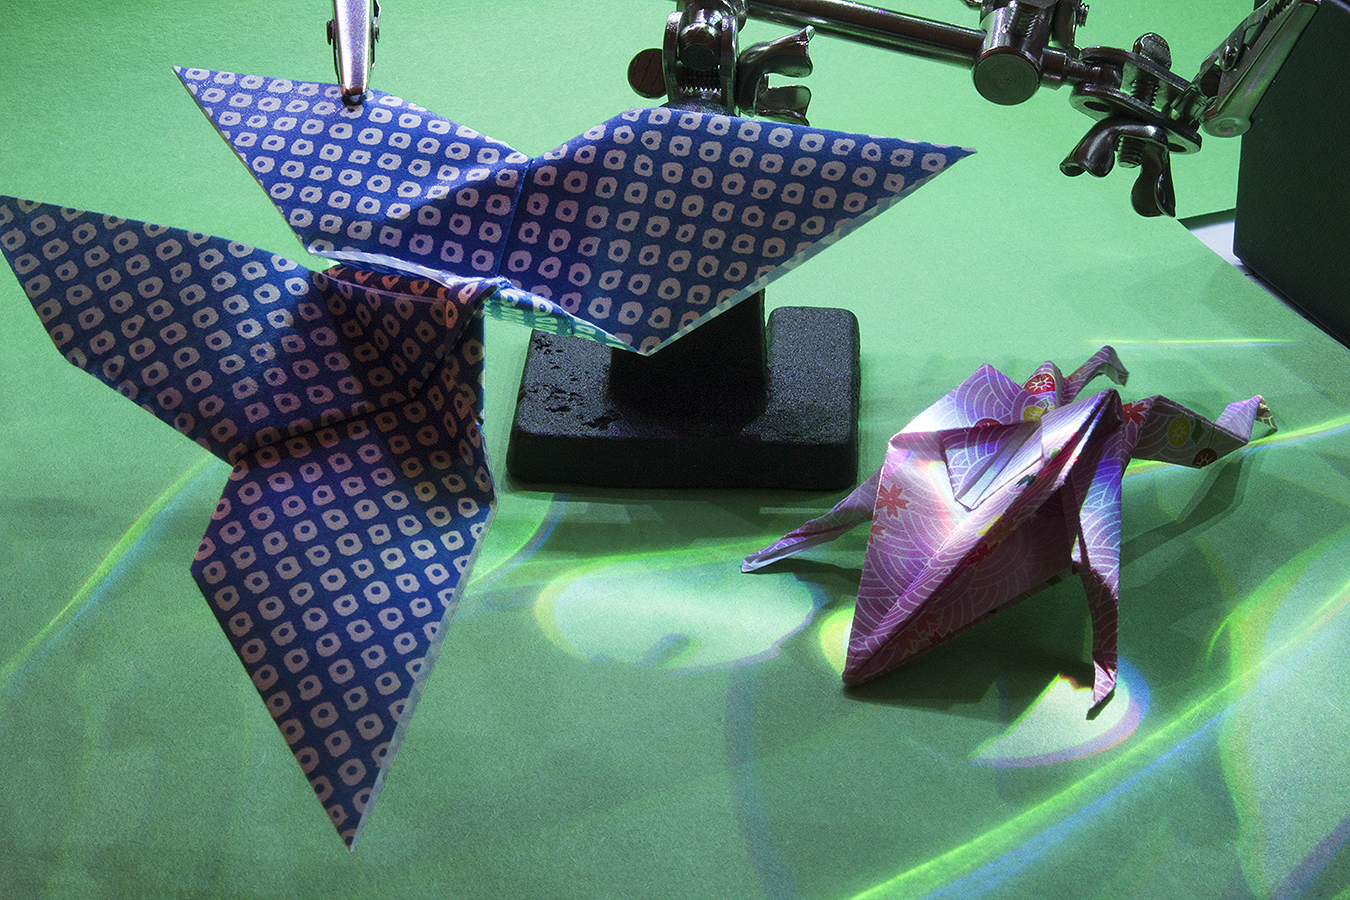 10_Fly_And_Frog_Jonathan_Tang_UPenn_Tony_Ward_Studio_Butterfly_Frog_Long_Exposure_Low_Light_LED_Optics_Origami_Paper